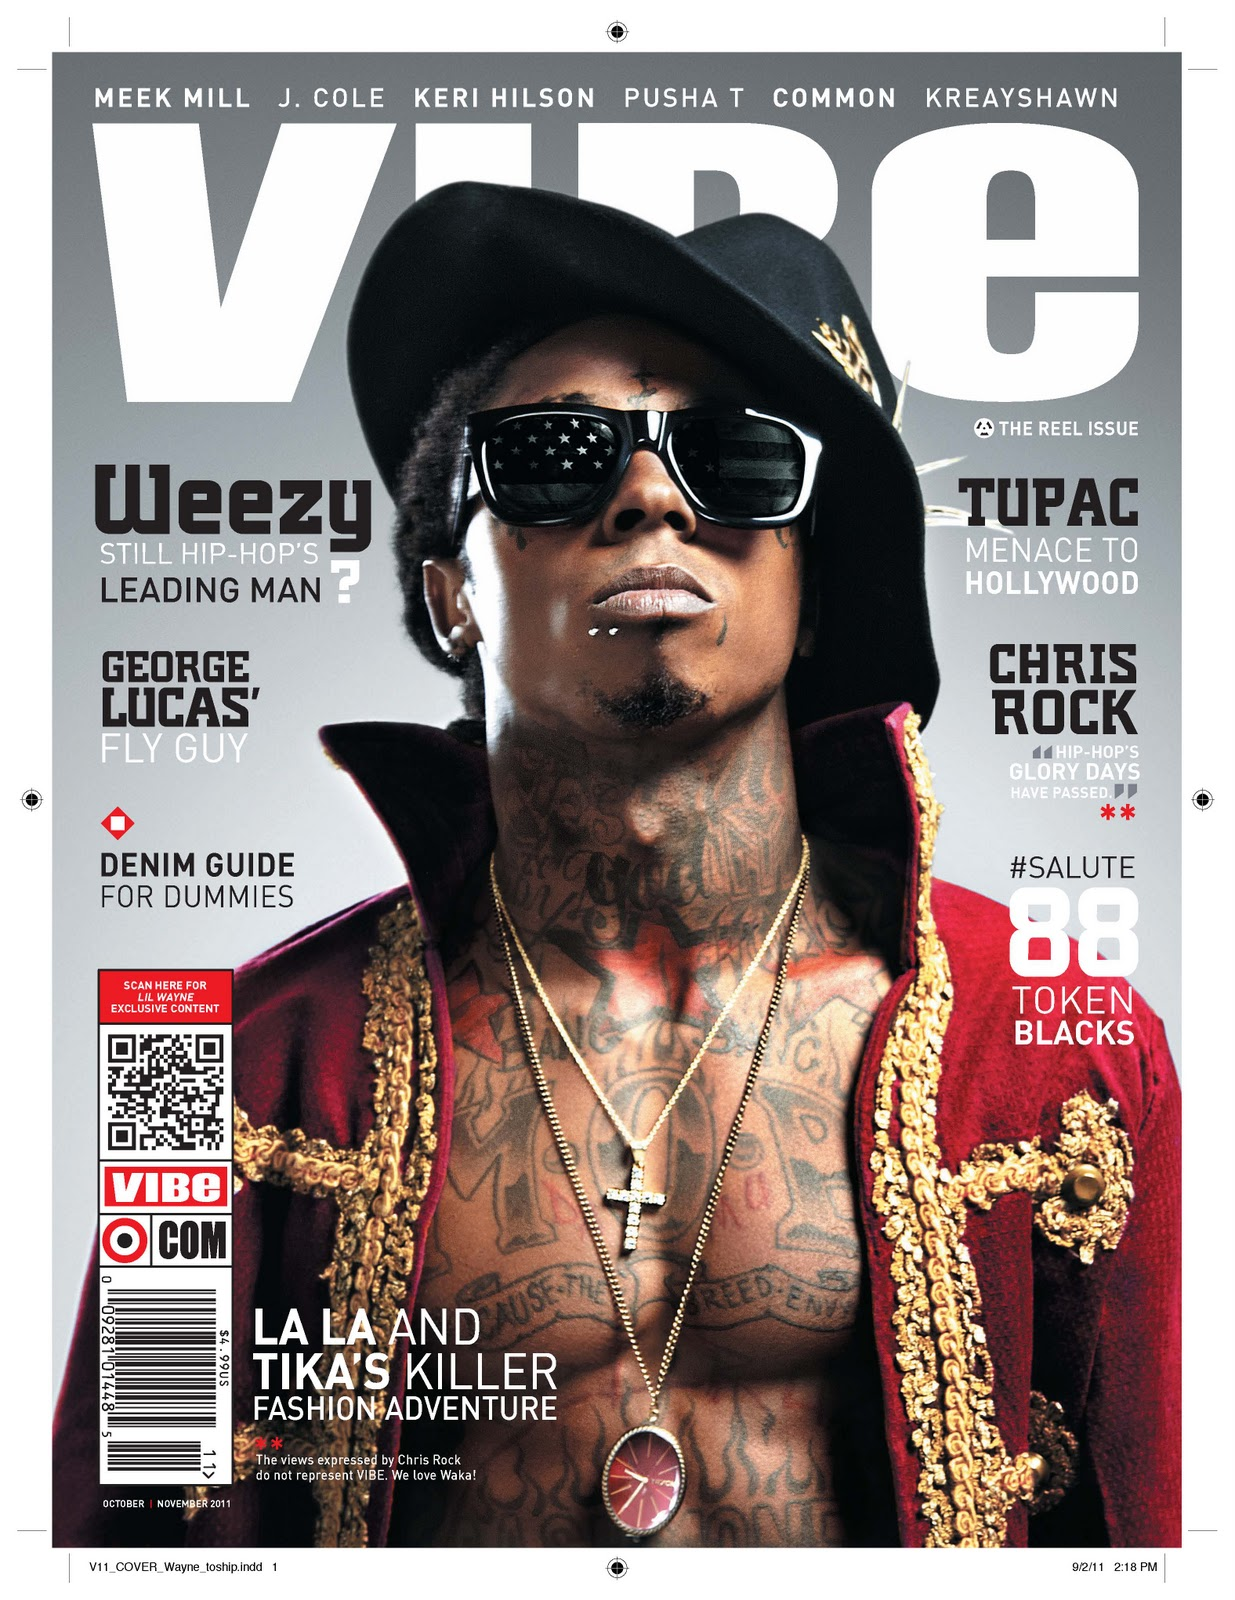 Lil Wayne covers this months